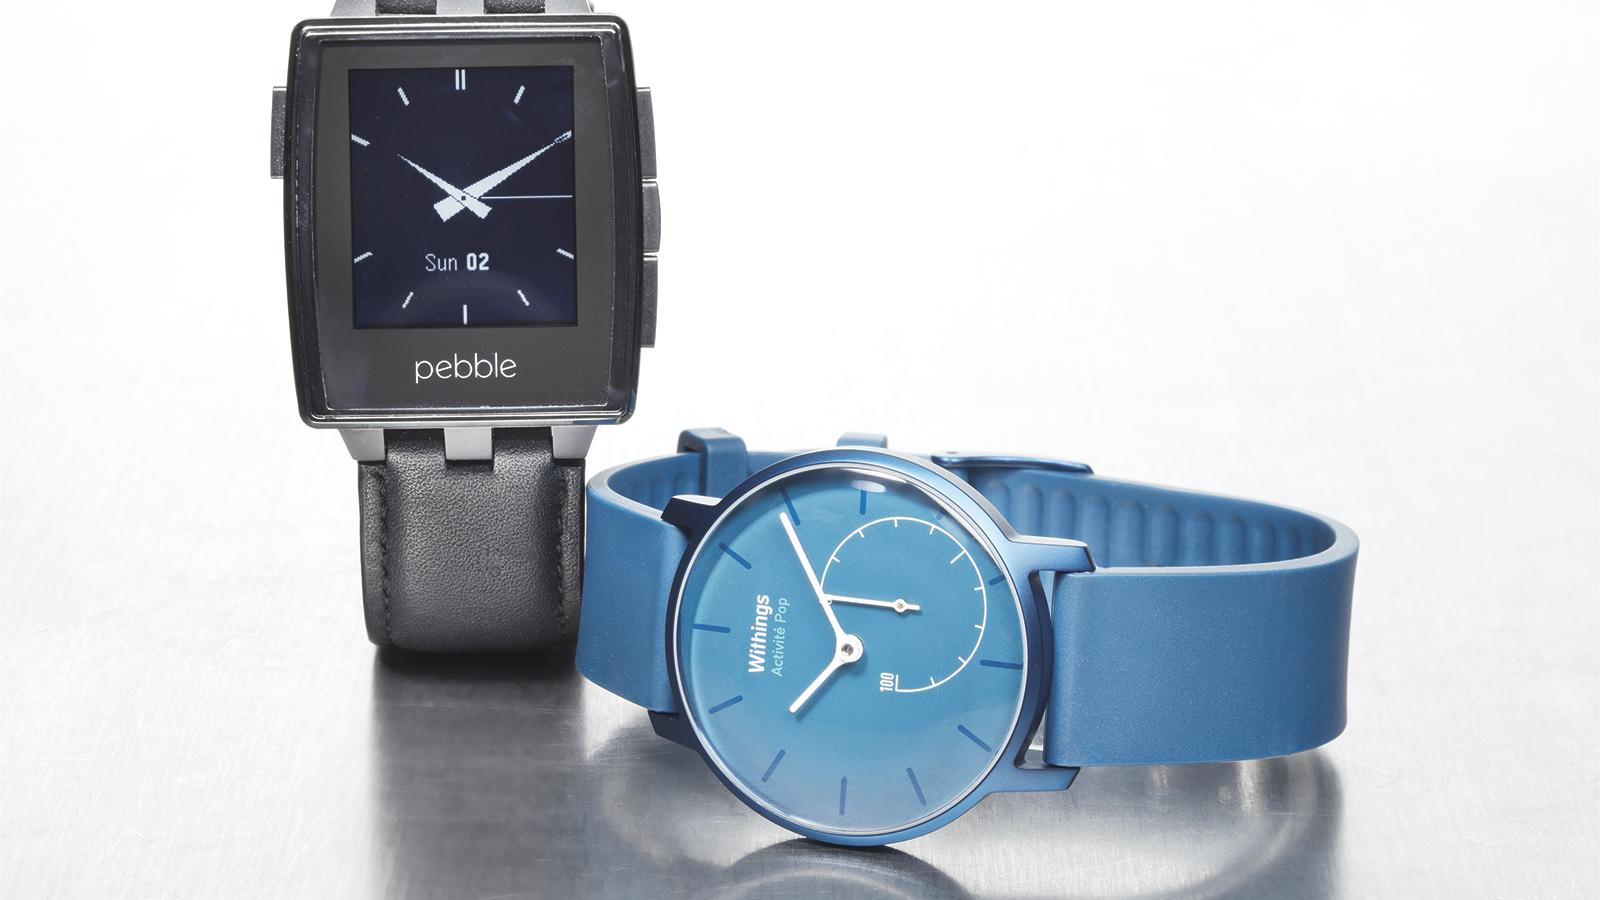 The Other Smartwatches